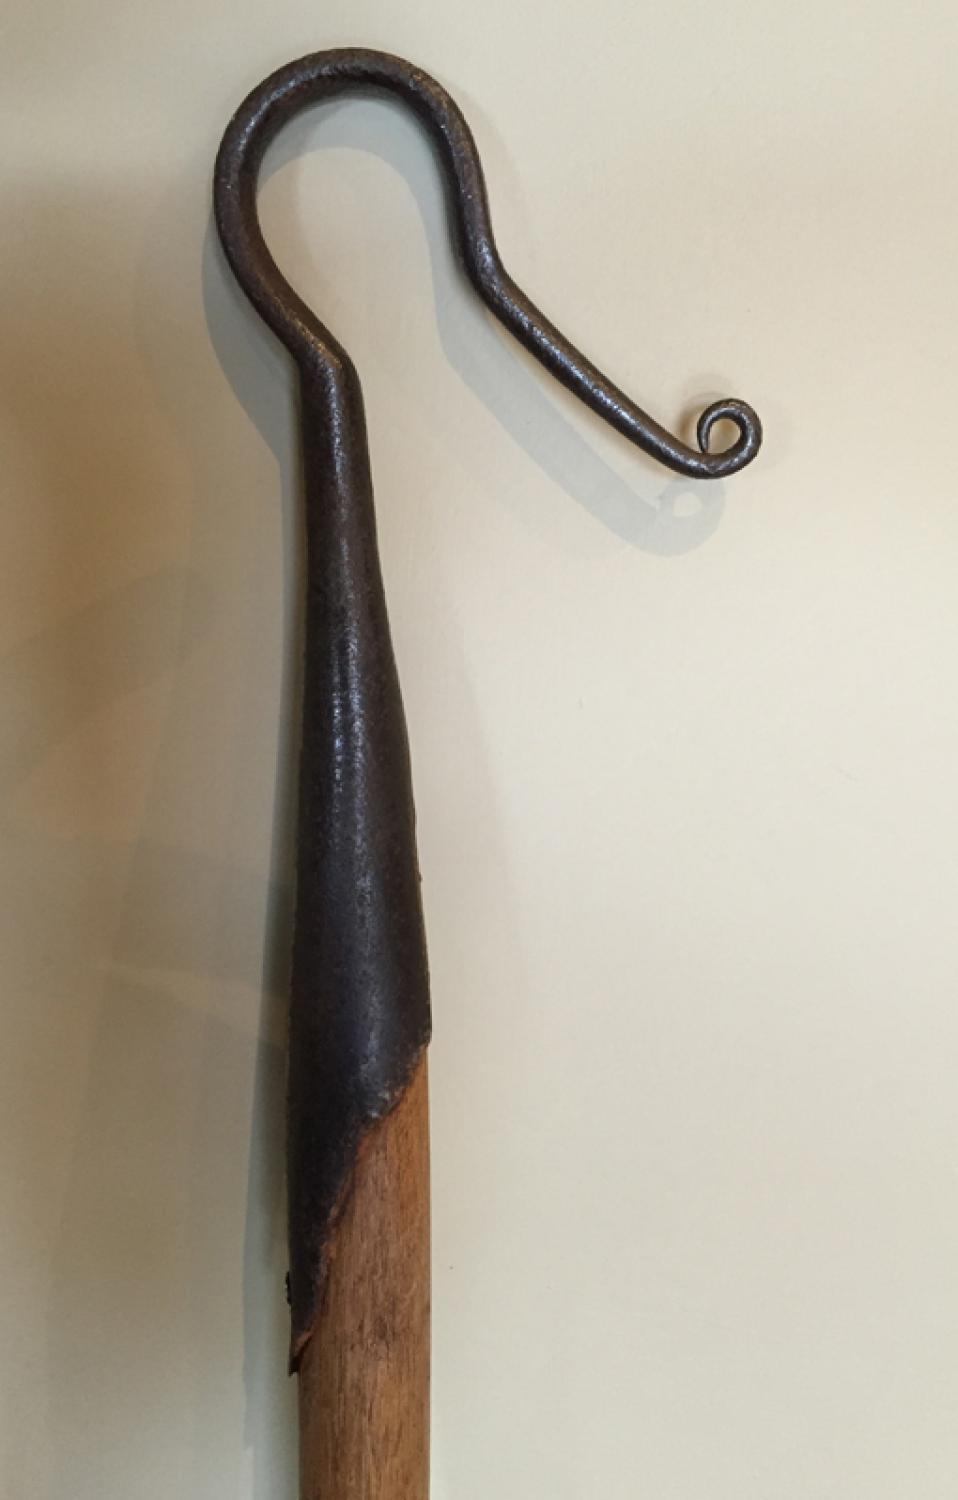 Antique Shepherd's Leg Crook